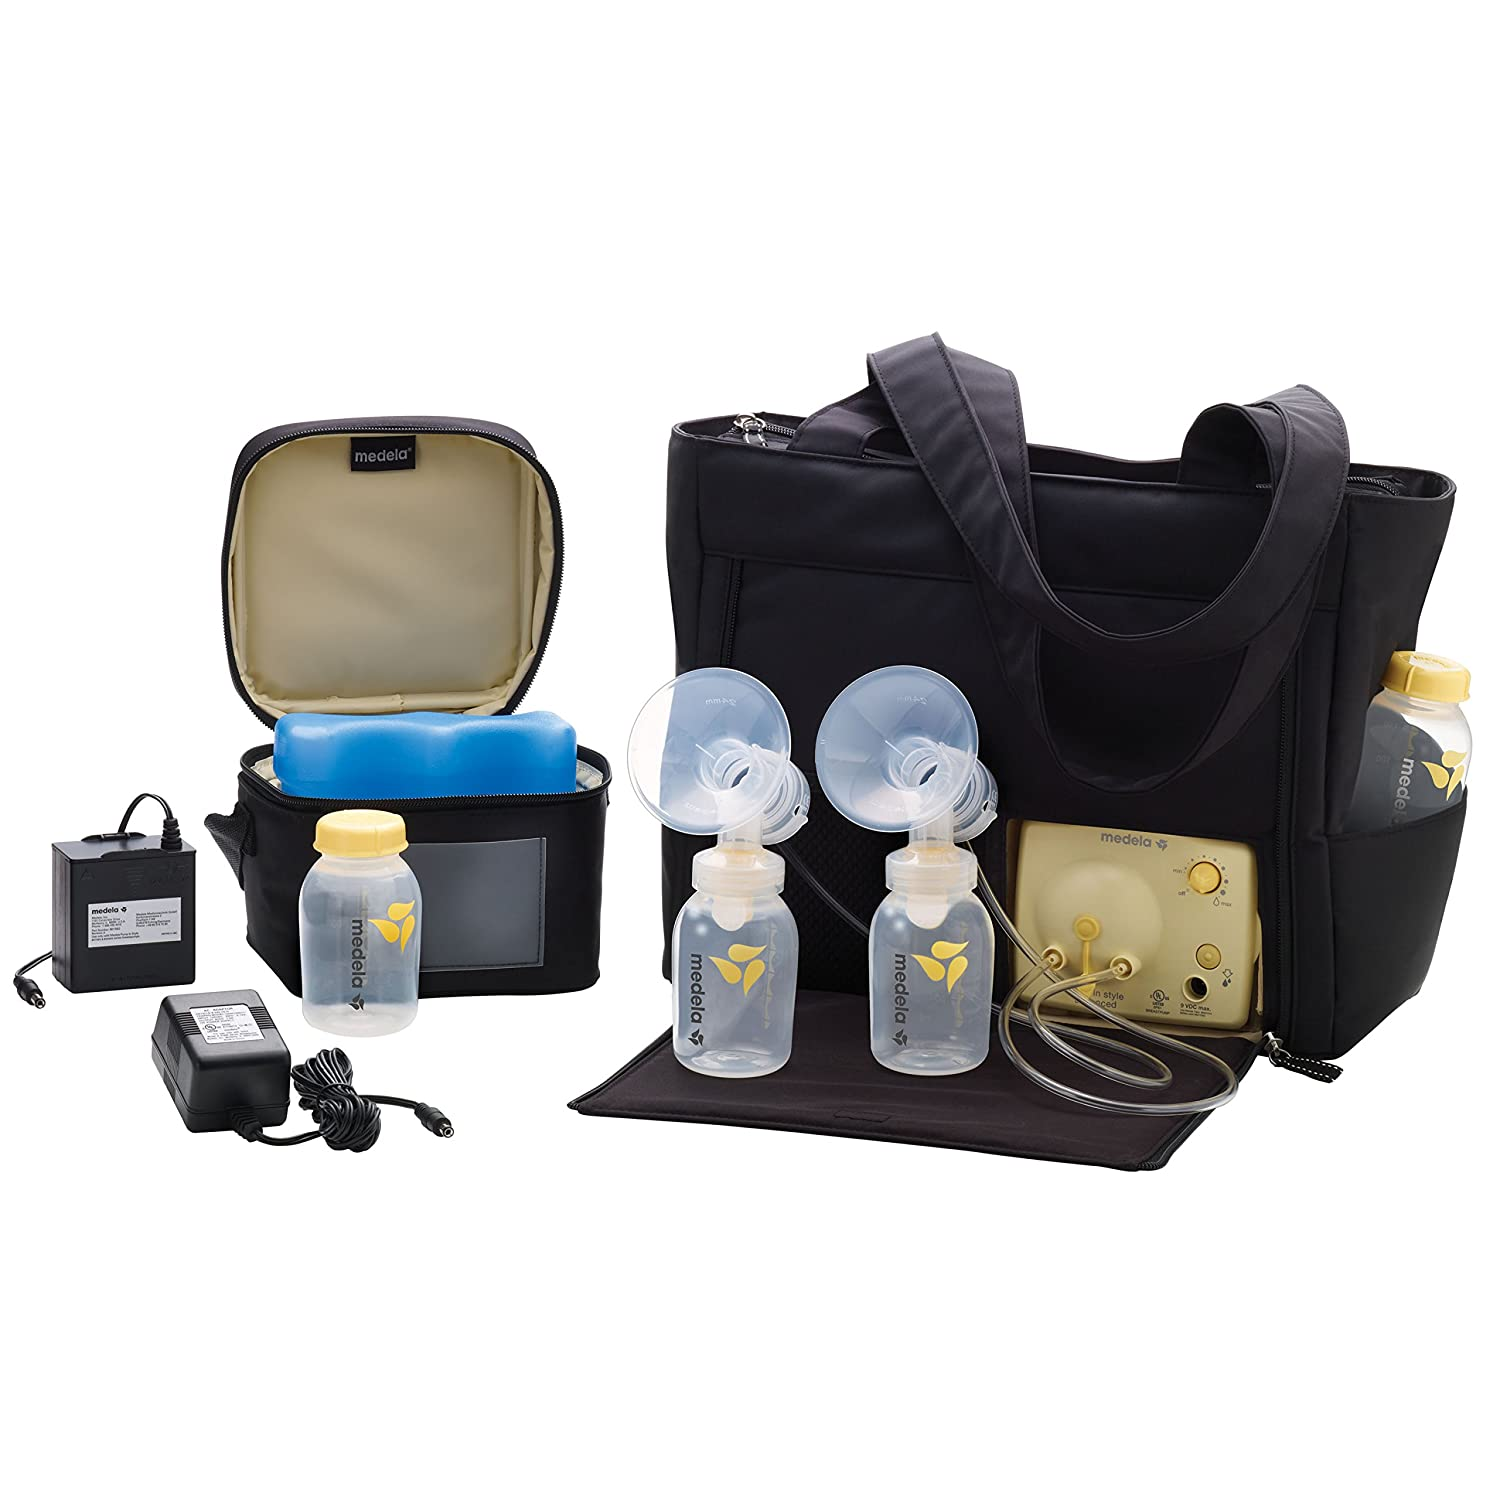 5d01284c7f9a Amazon.com  Medela Pump in Style Advanced with On the Go Tote ...